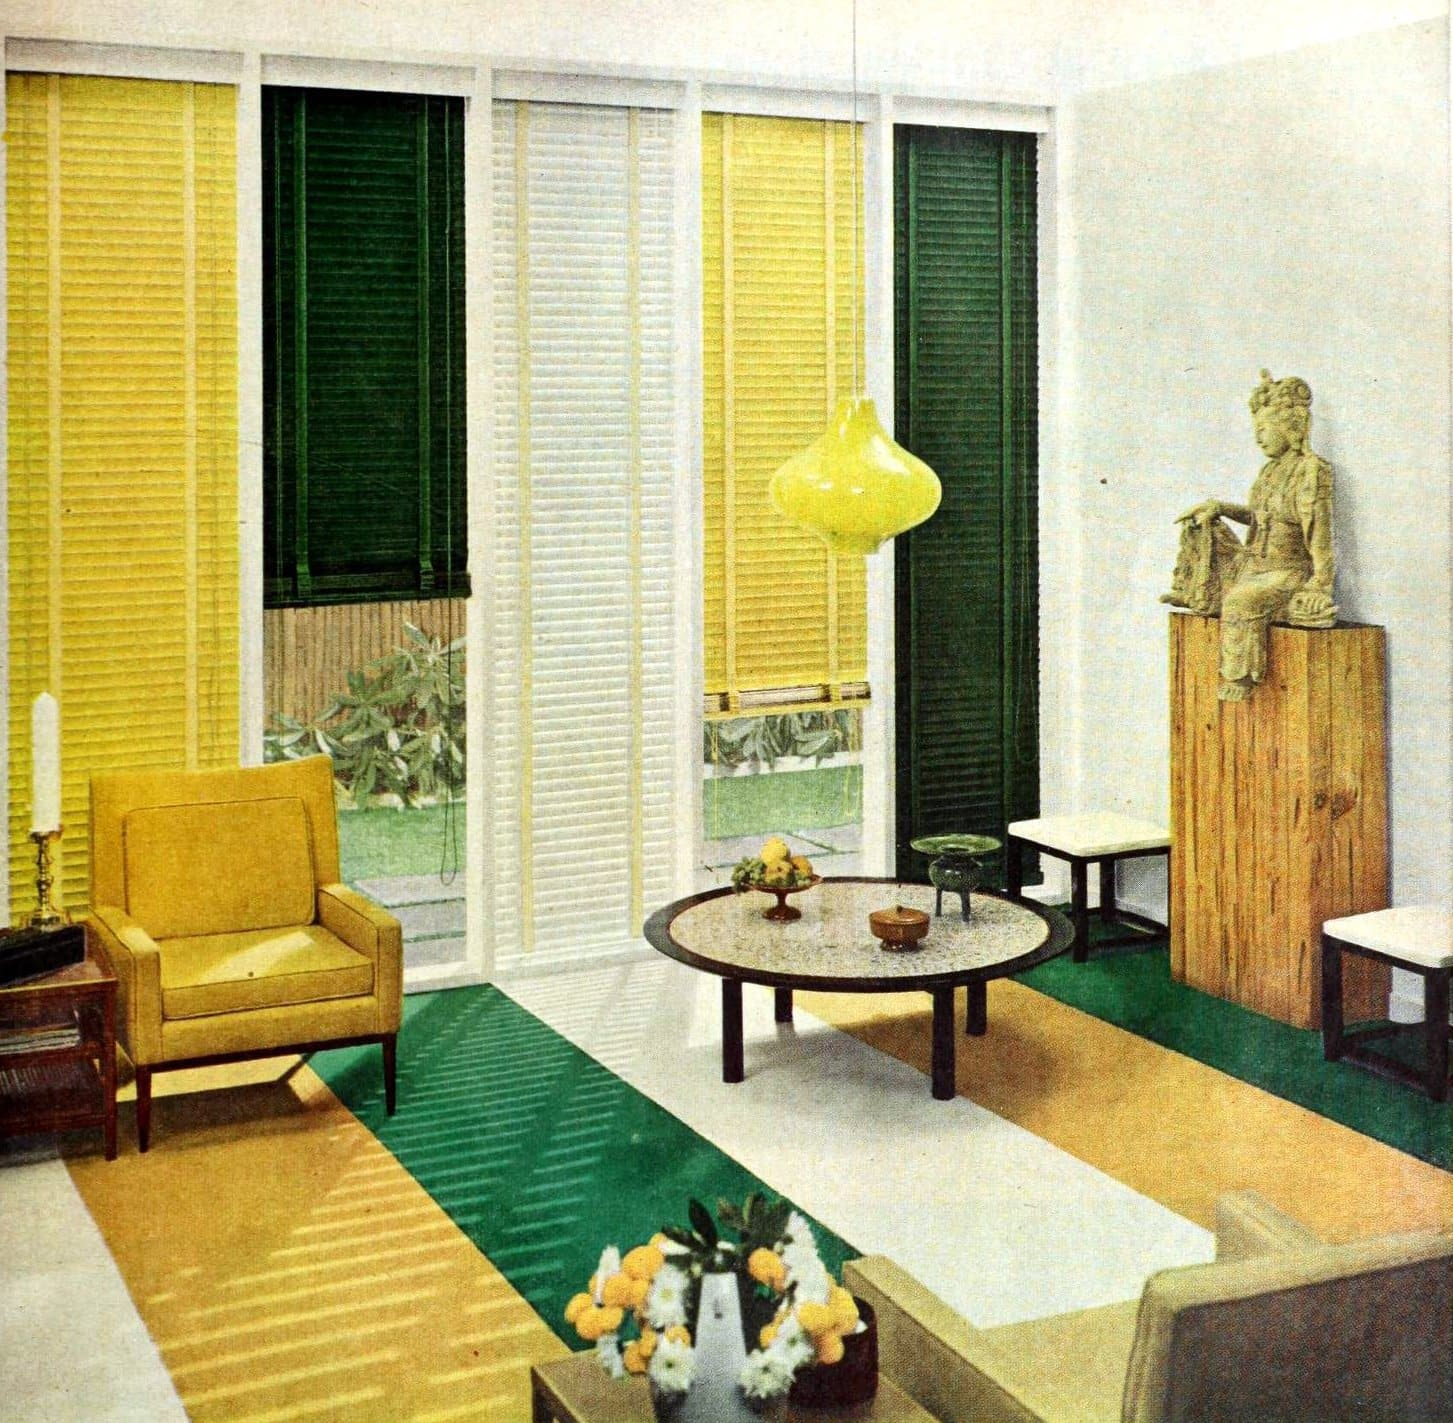 Yellow window blinds and furniture from the 1950s